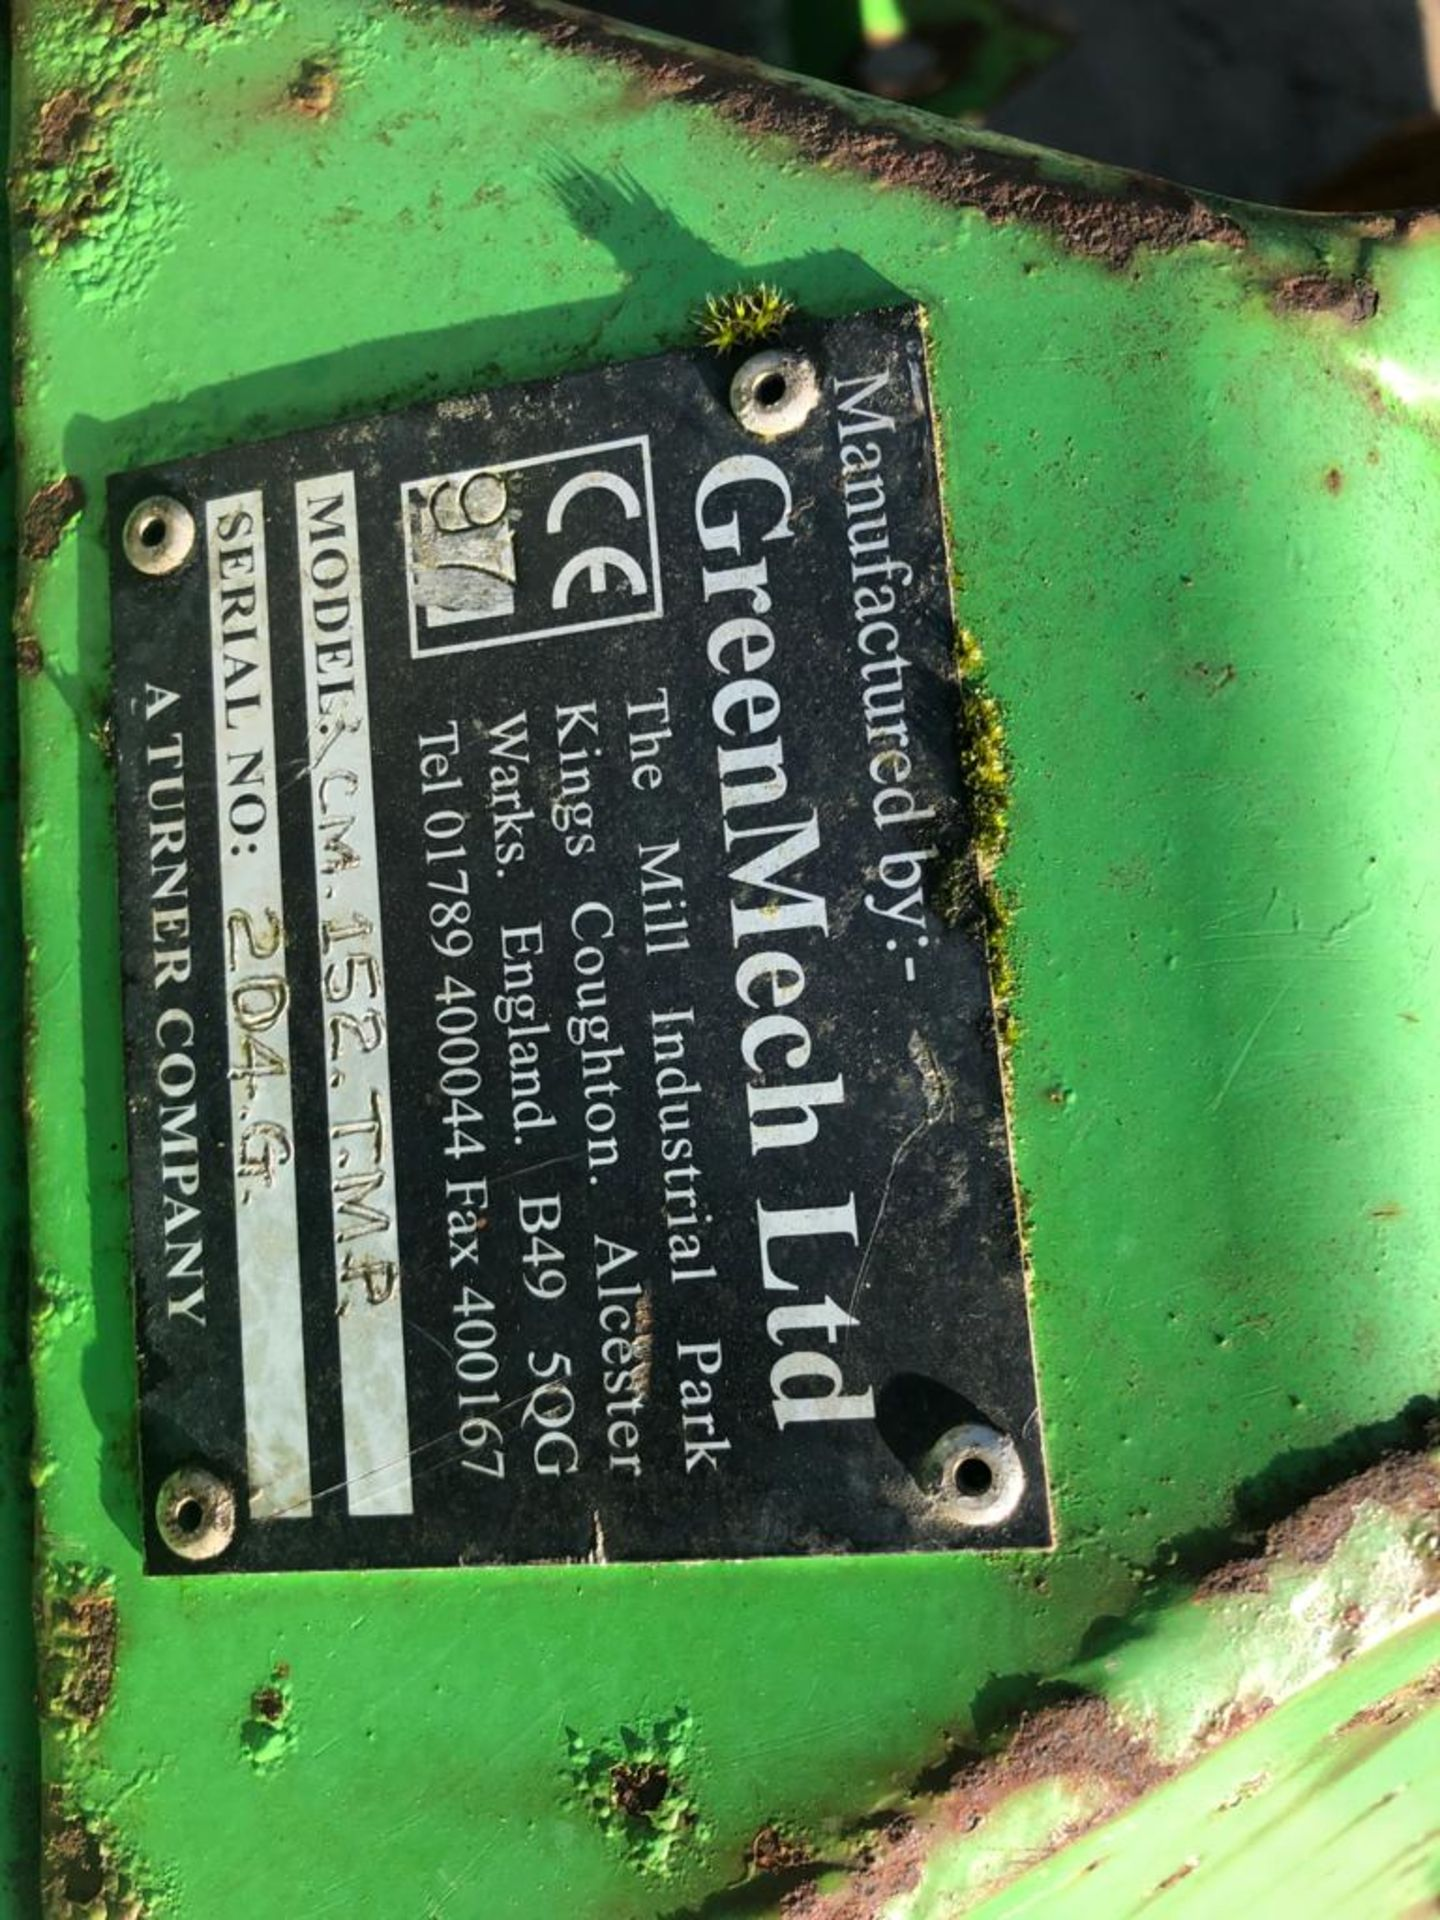 GREENMECH WOOD CHIPPER, 3 POINT LINKAGE, WORKS AND CUTS *PLUS VAT* - Image 2 of 8